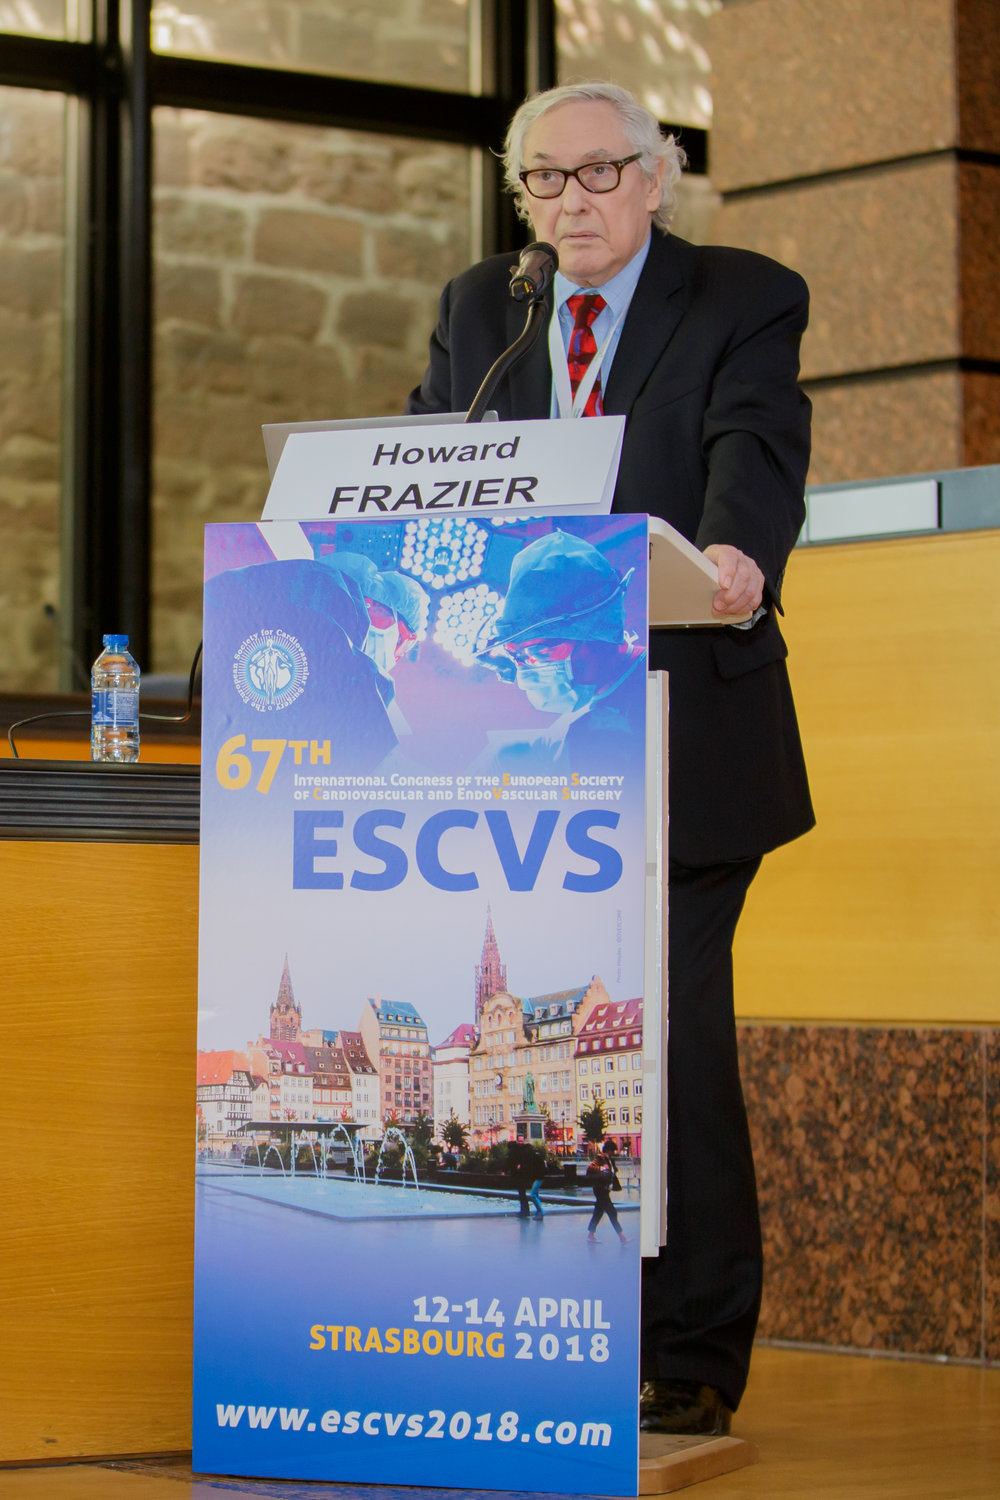 Pr. Howard Frazier at the 67th International Congress of the European Society of Cardiovascular and EndoVascular Surgery